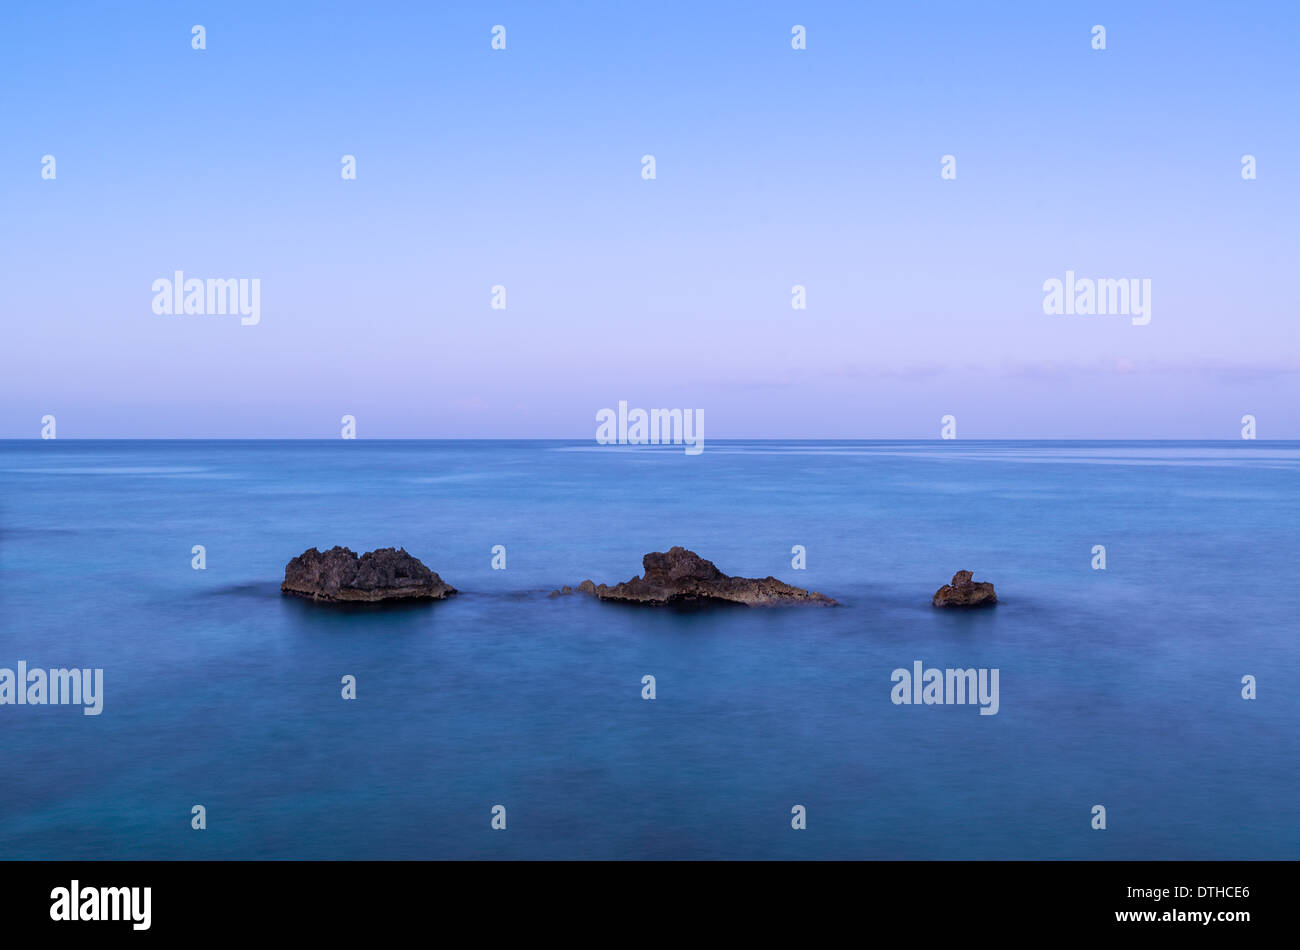 Tranquil seascape, Negril, Jamaica - Stock Image